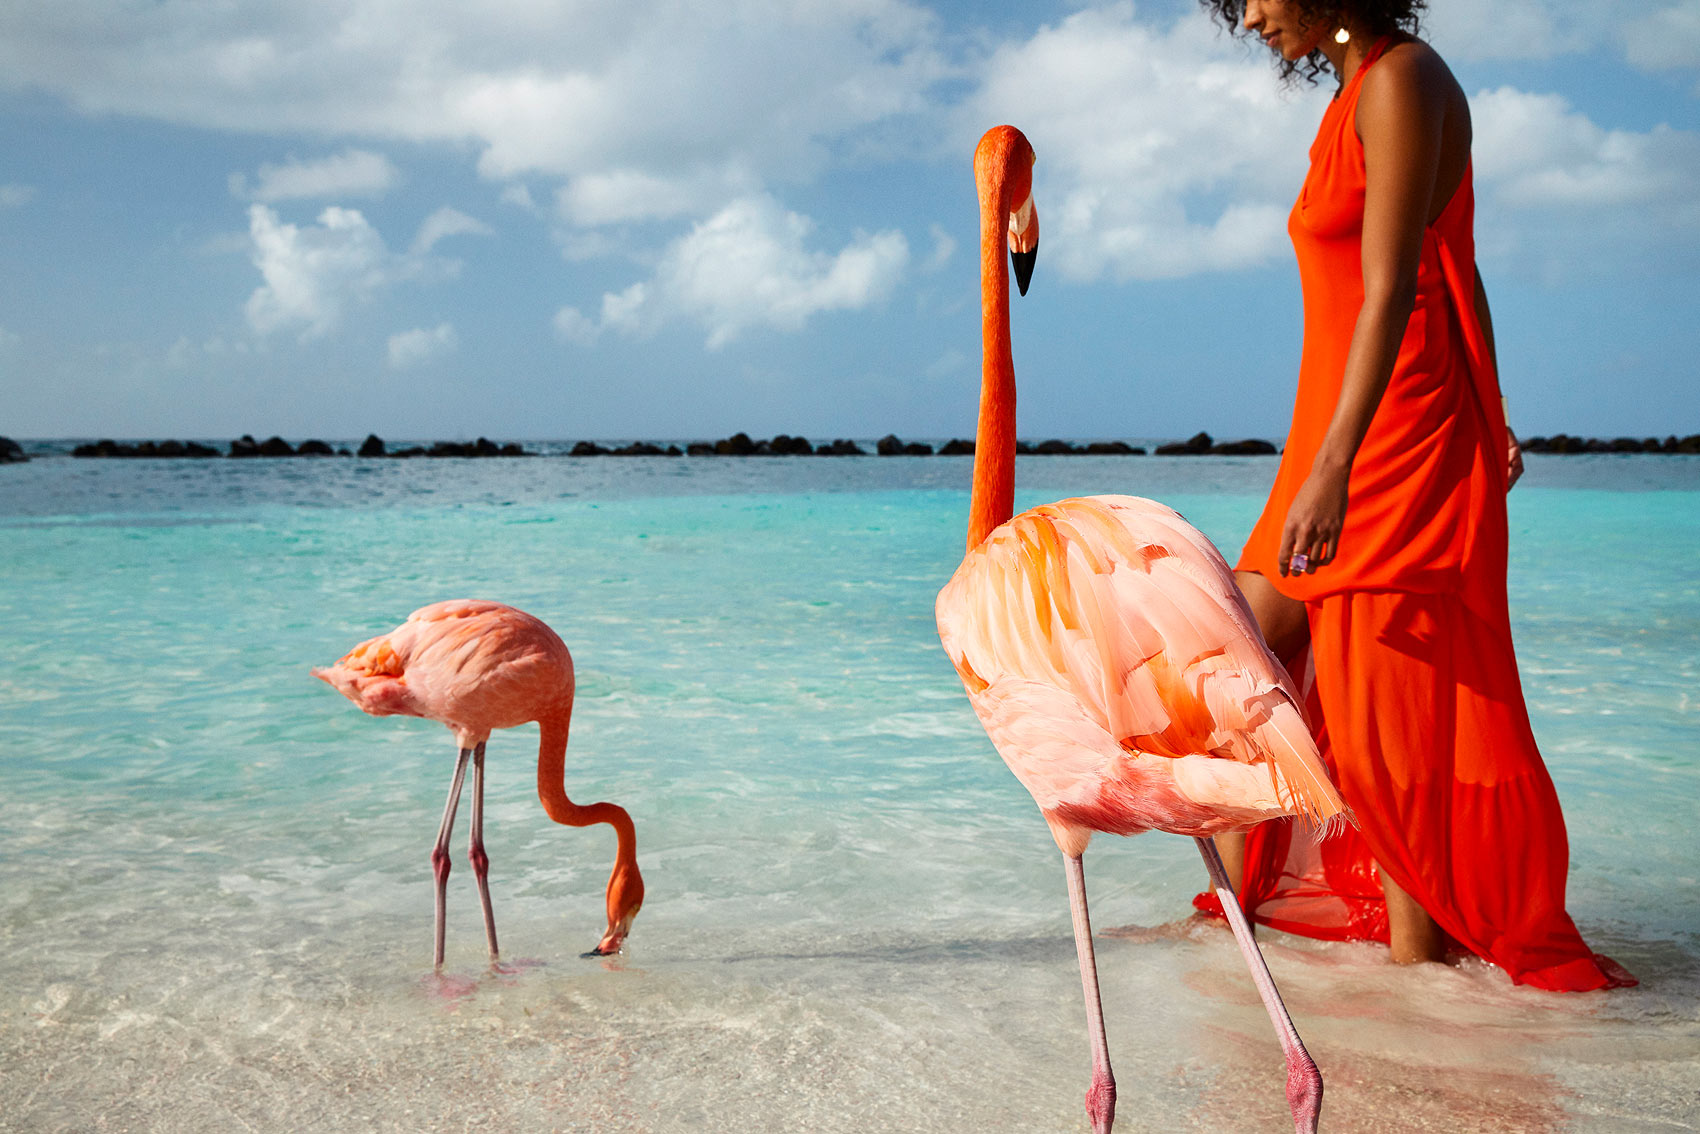 RH_Lifestyle_2019_resort_Flamingos_S02_01156